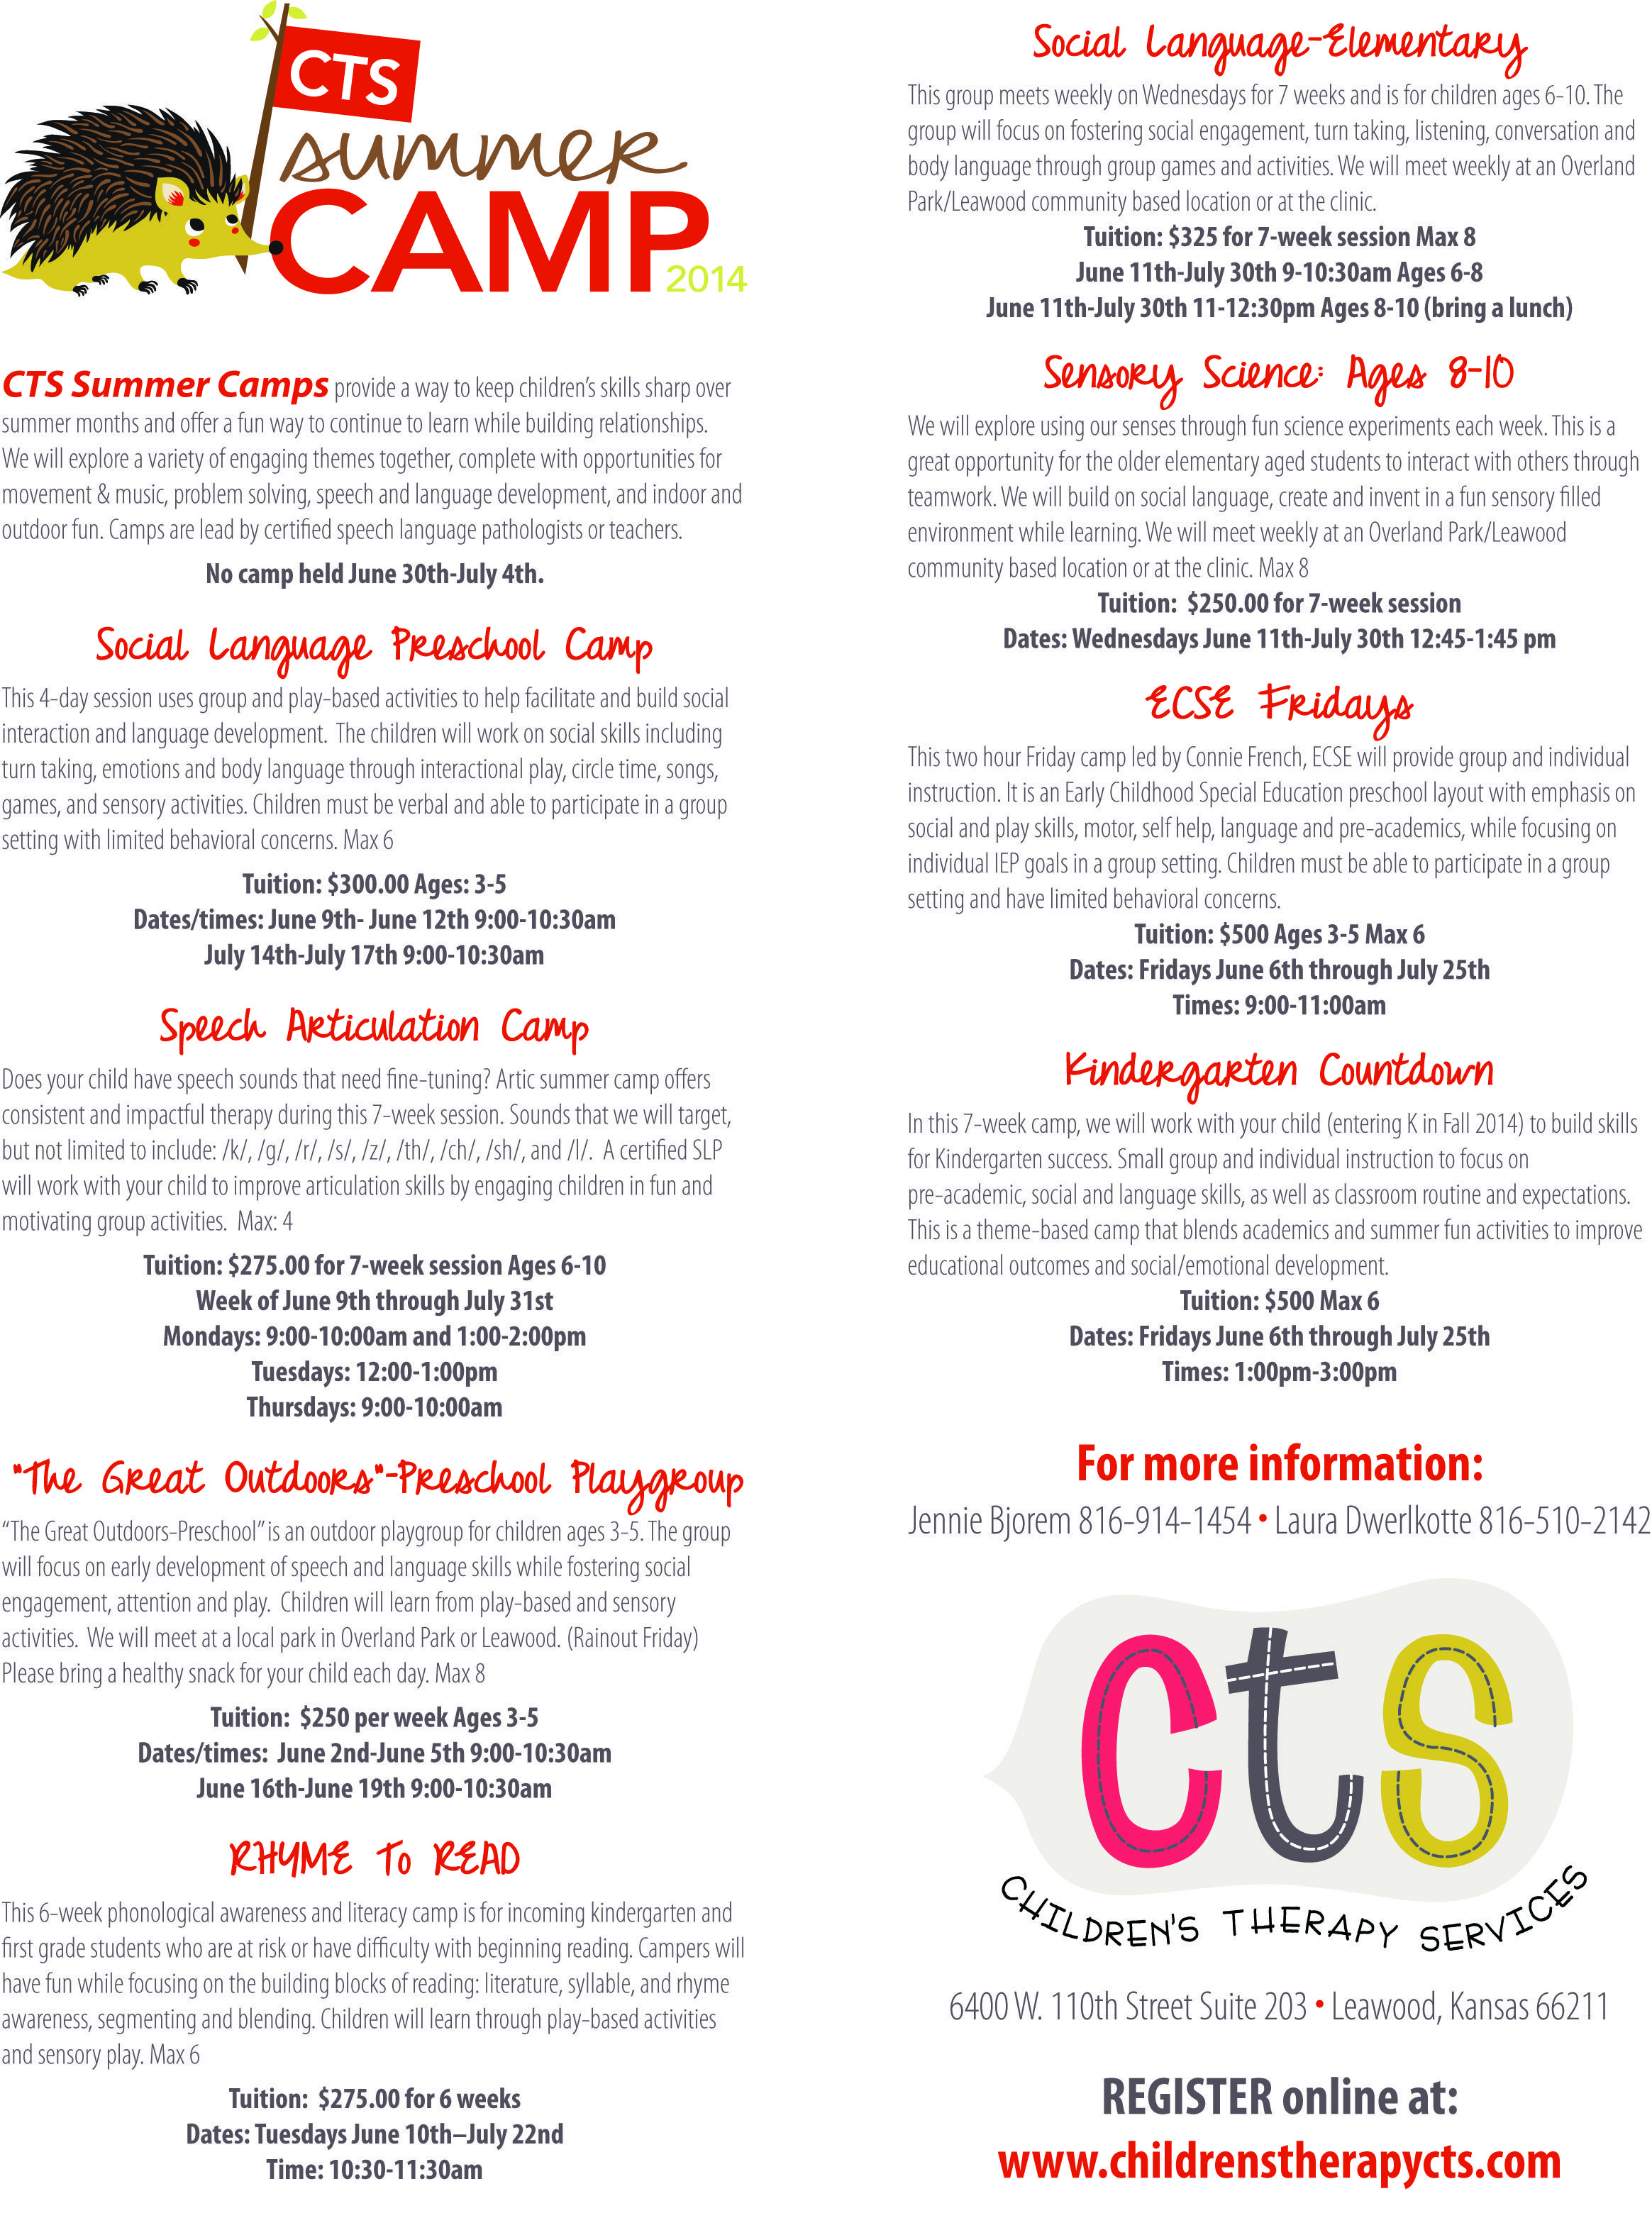 Cts Summer Camp Ildrenstherapycts